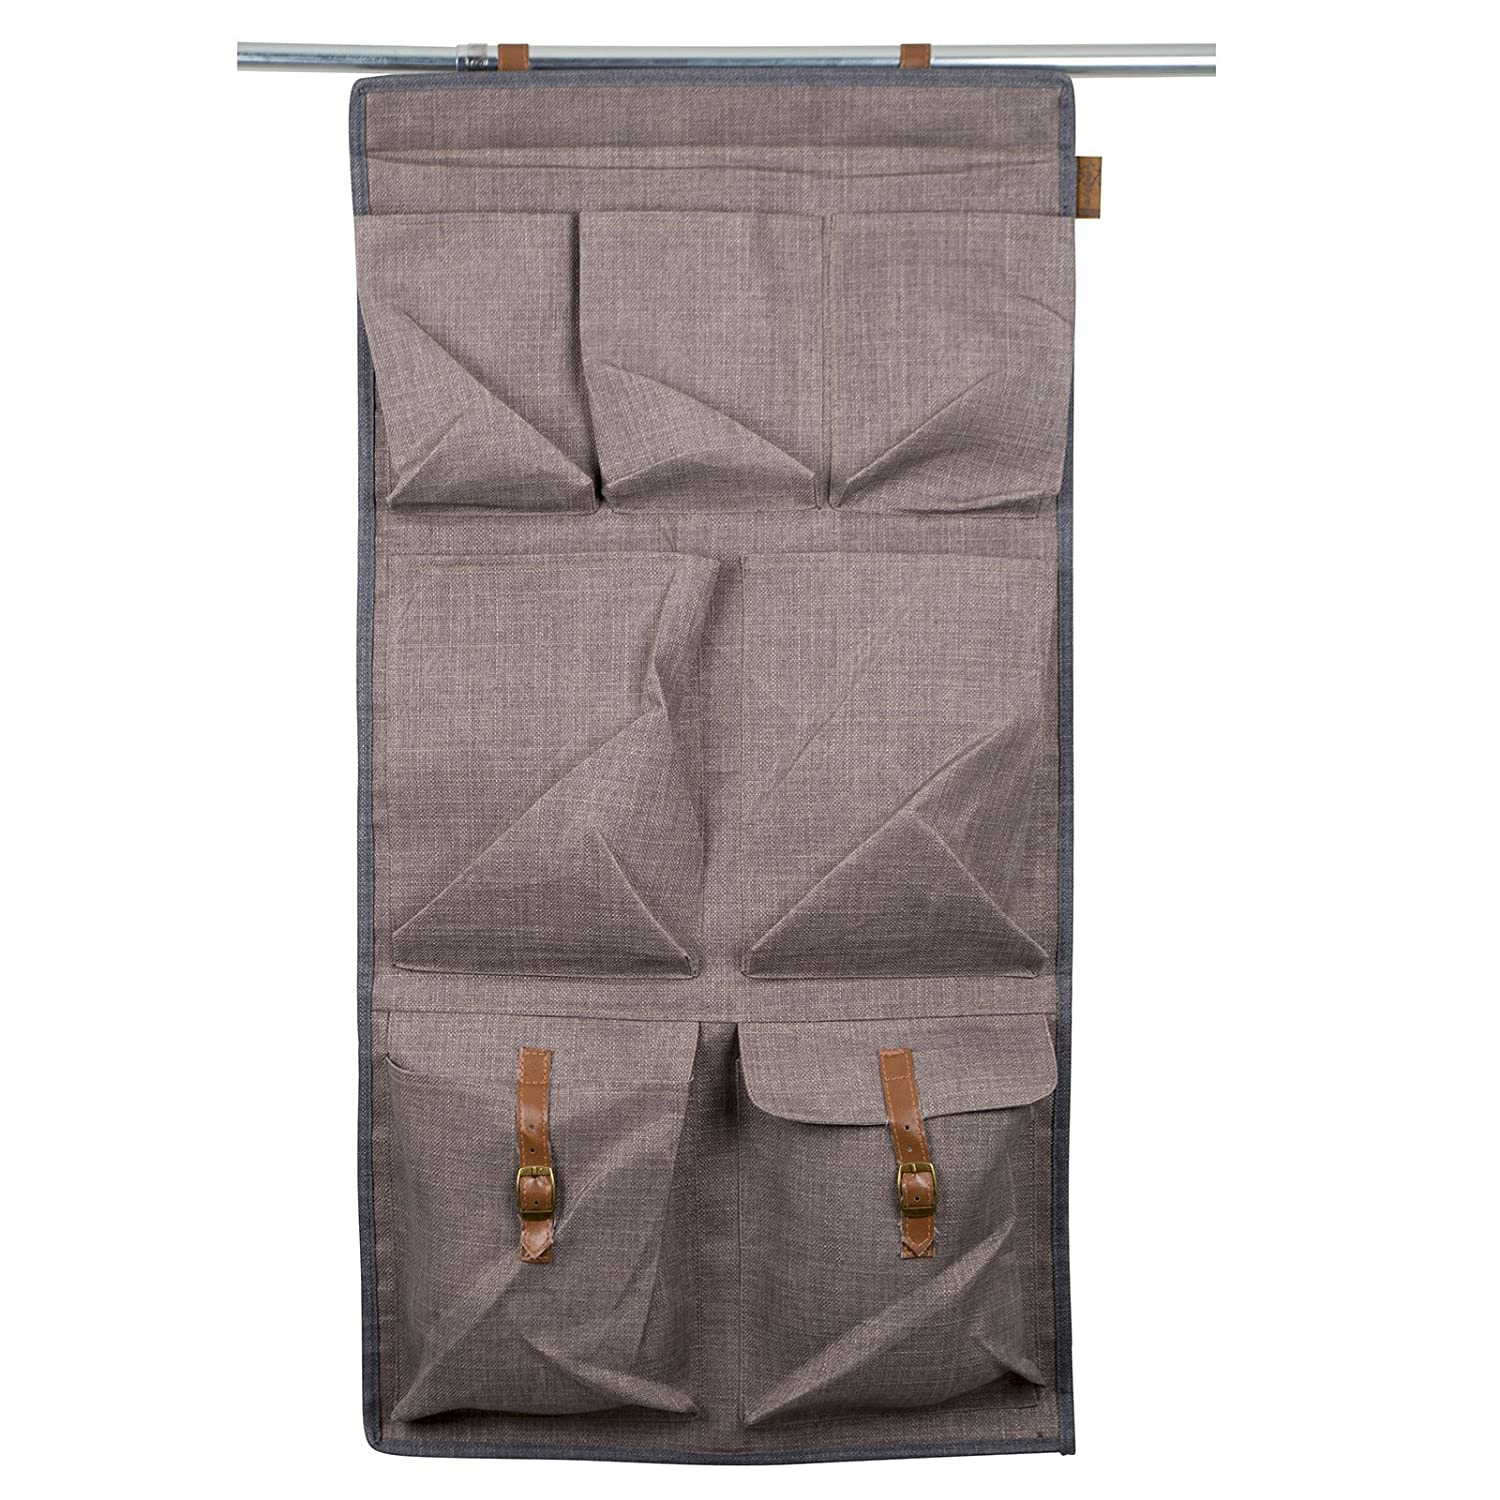 Bo-Camp Urban Outdoor Hä ngeregal 7 Fach Organizer in Leinen Stoff Optik 45 x 90 cm